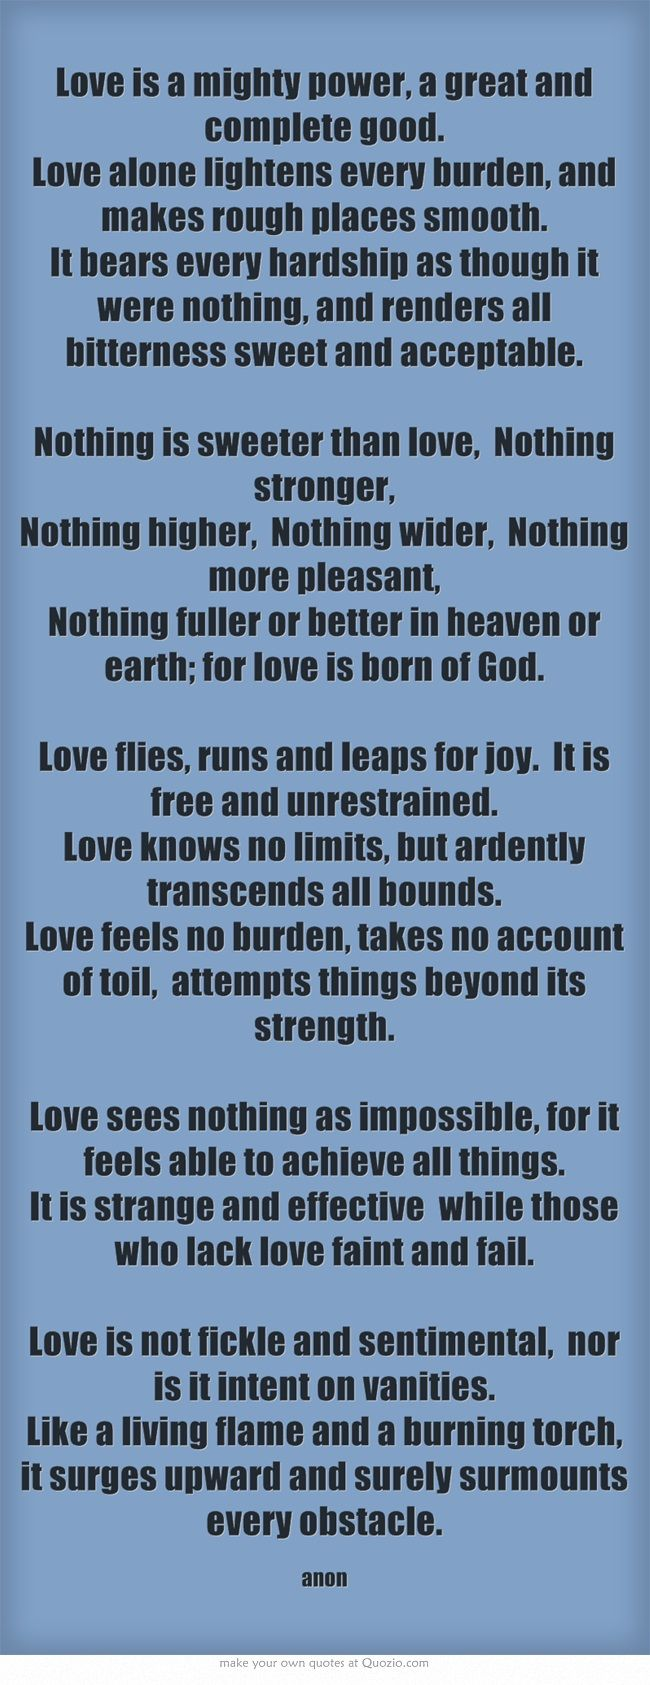 Love is a mighty power,  This sounds a lot like Paul's letter to the Corinthians with a modern twist.